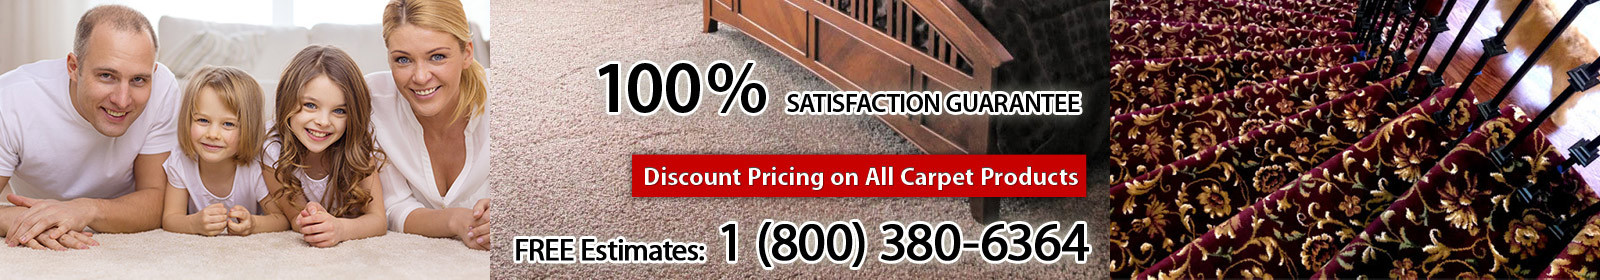 flooring-carpet-installation-service